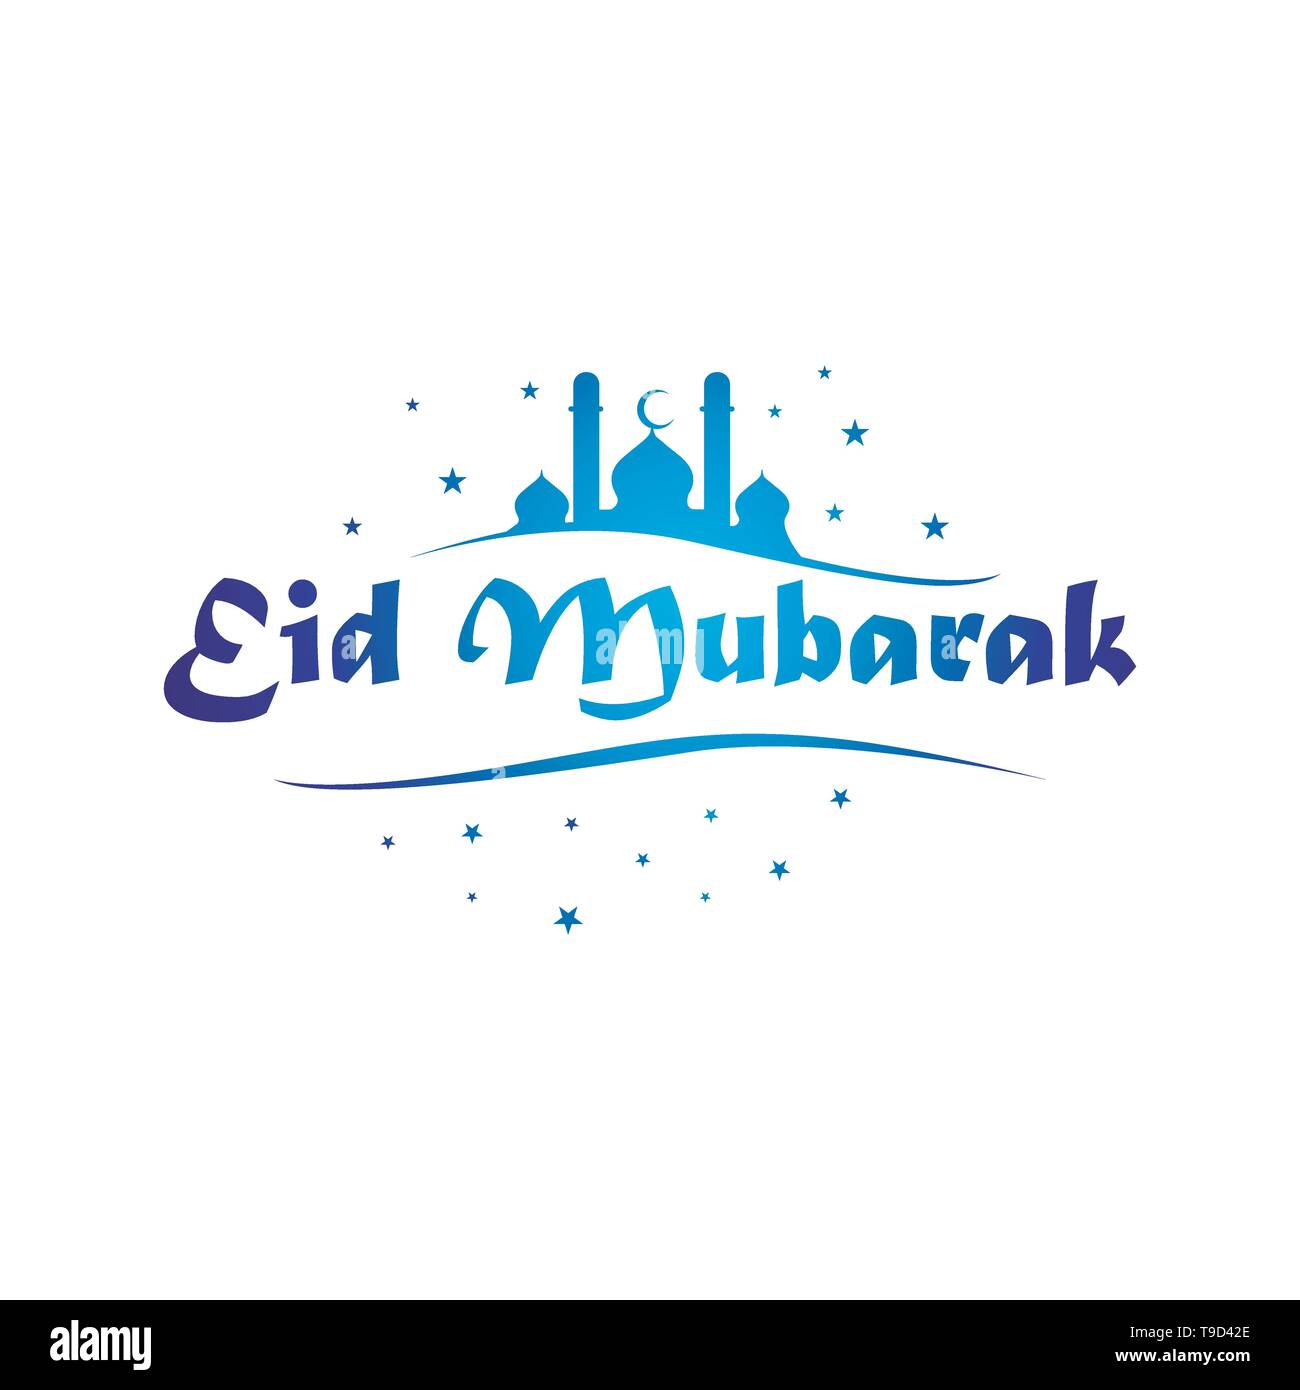 Eid Mubarak Calligraphy High Resolution Stock Photography And Images Alamy